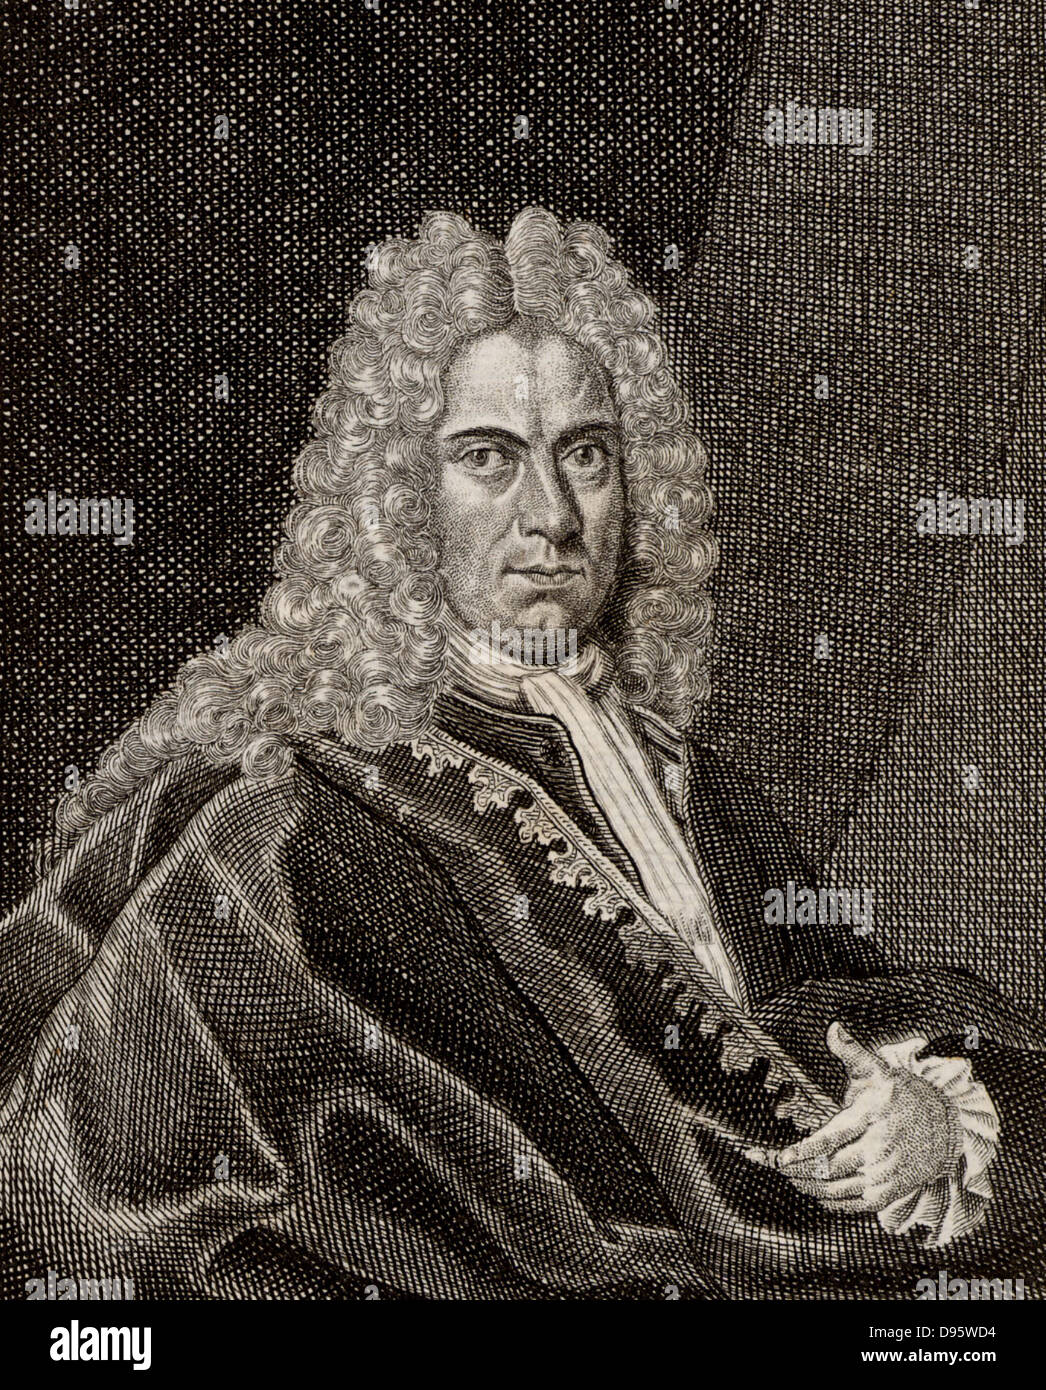 Johann Heinrich Schulze (1687-1744) Professor anatomy at Altdorf. Important  in the history of photography because in 1725 he